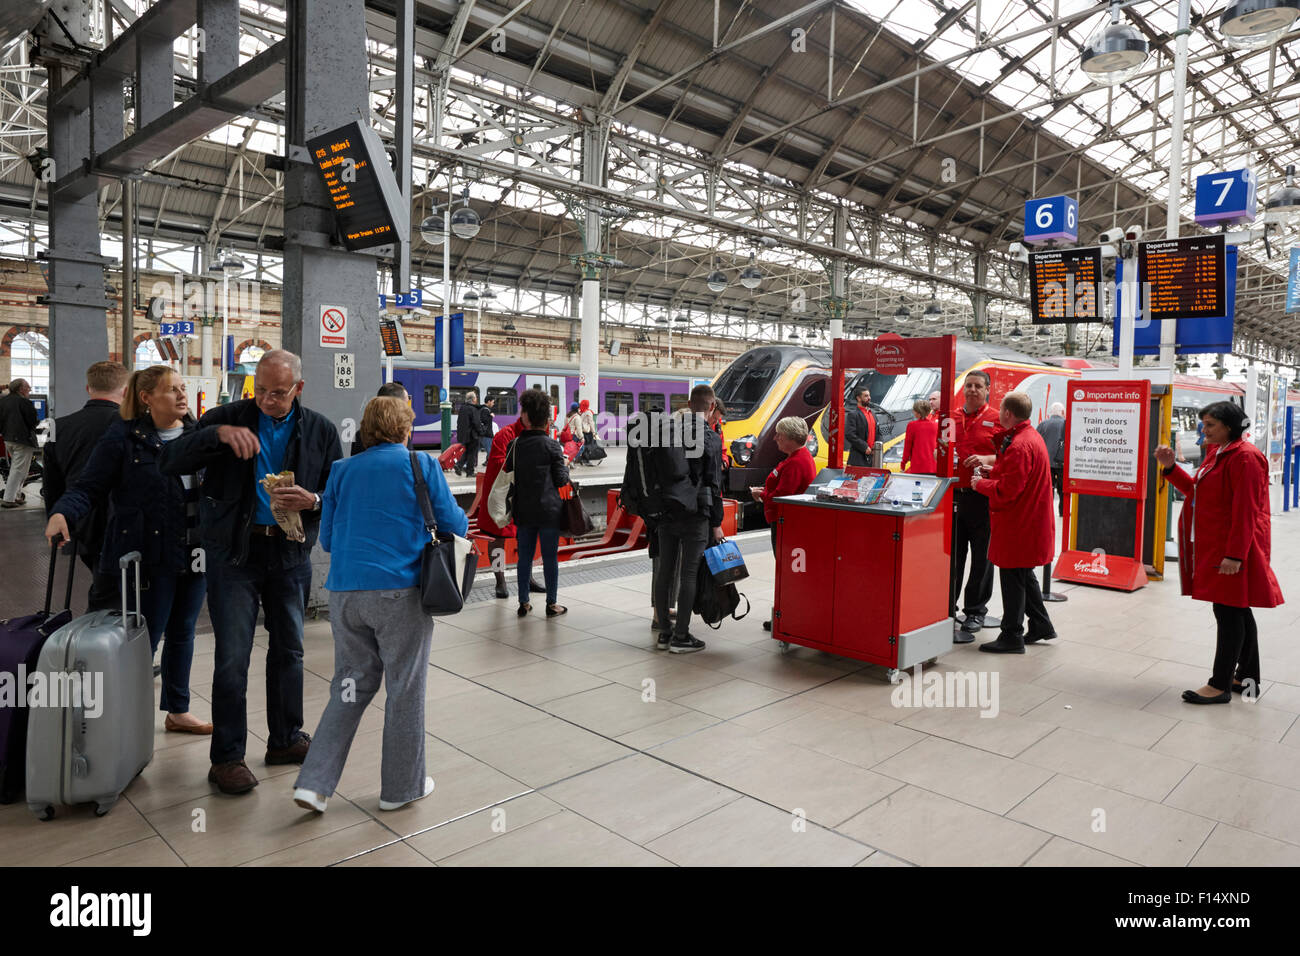 virgin trains check in desks at Piccadilly train station Manchester UK - Stock Image